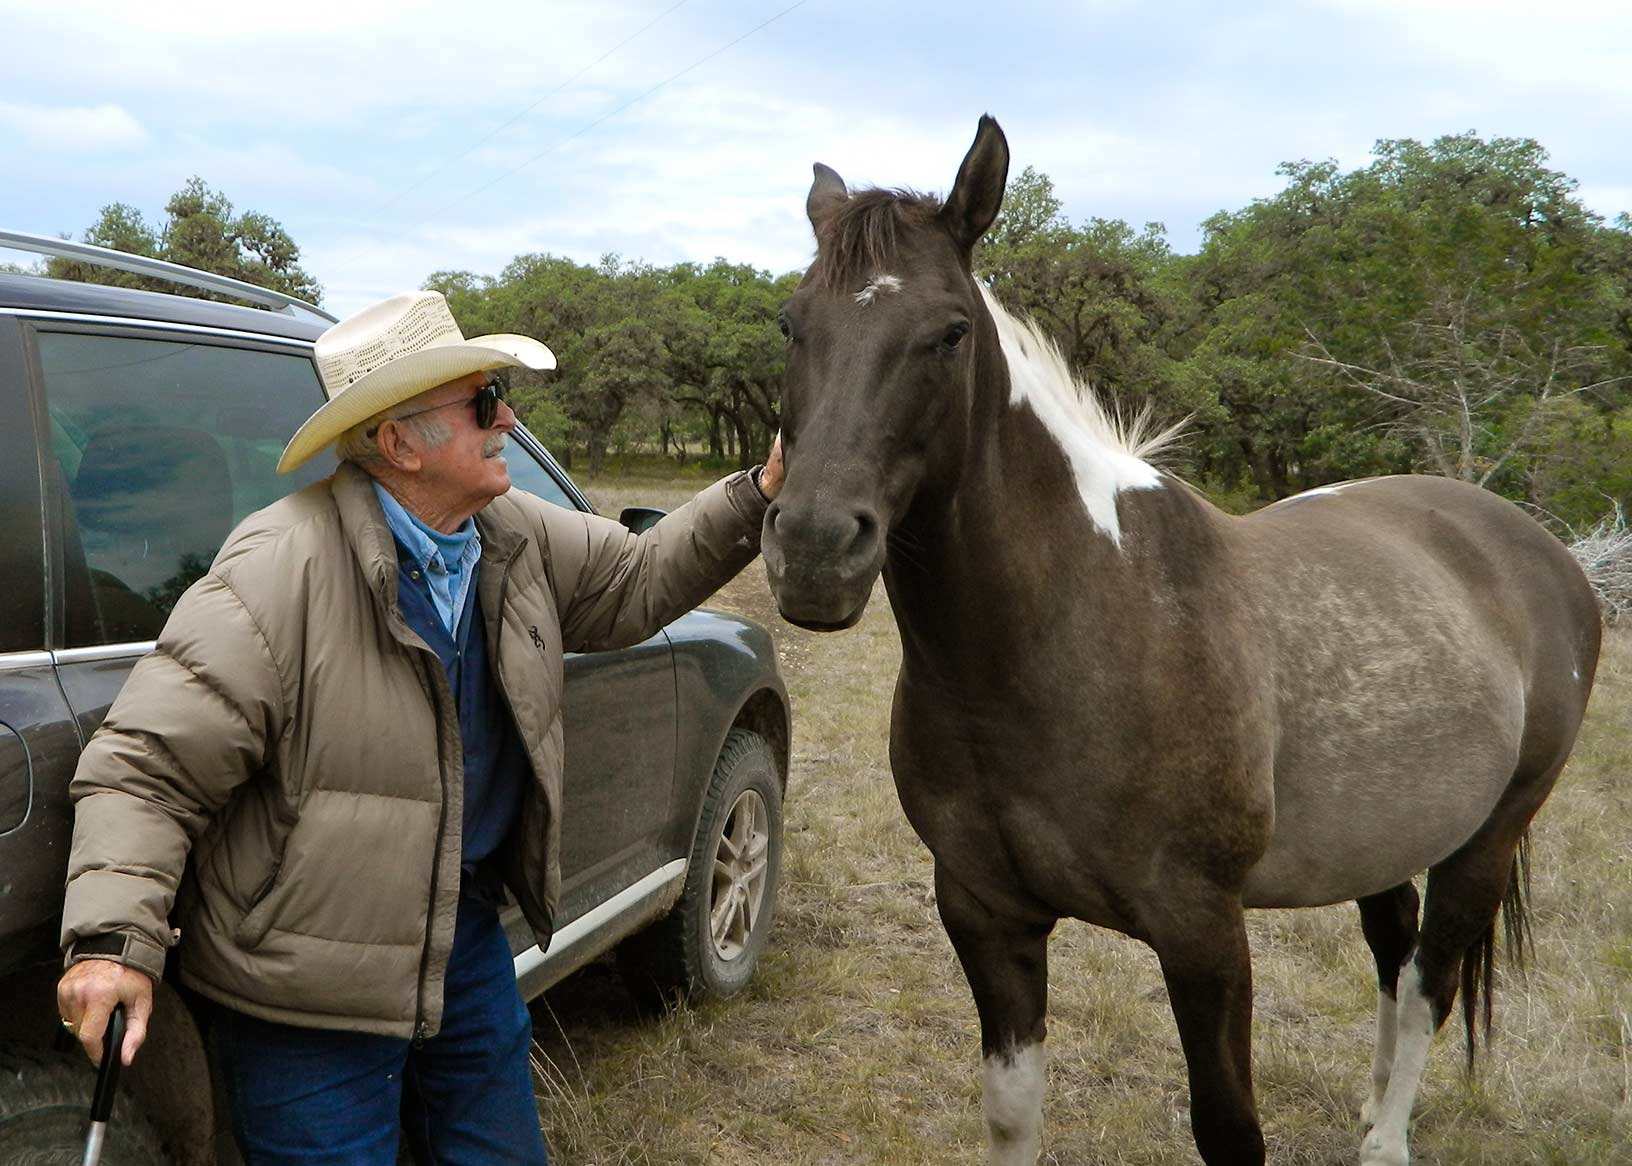 Colonel Russell has trained our horses at his facility in San Antonio for show jumping